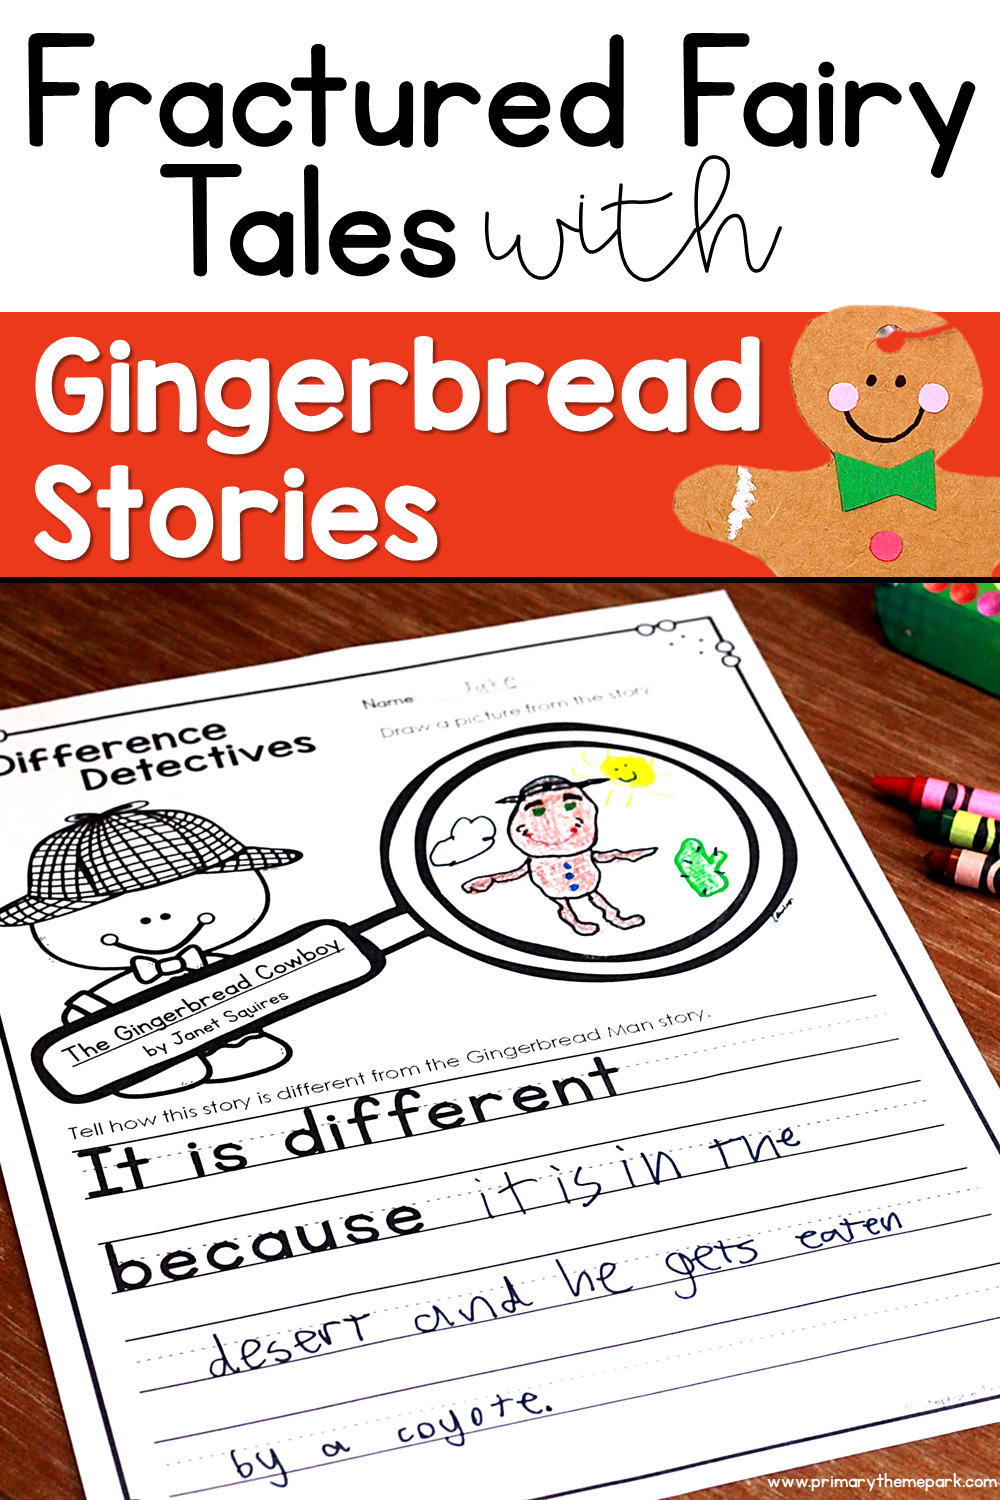 Fractured Fairy Tales with Gingerbread Stories